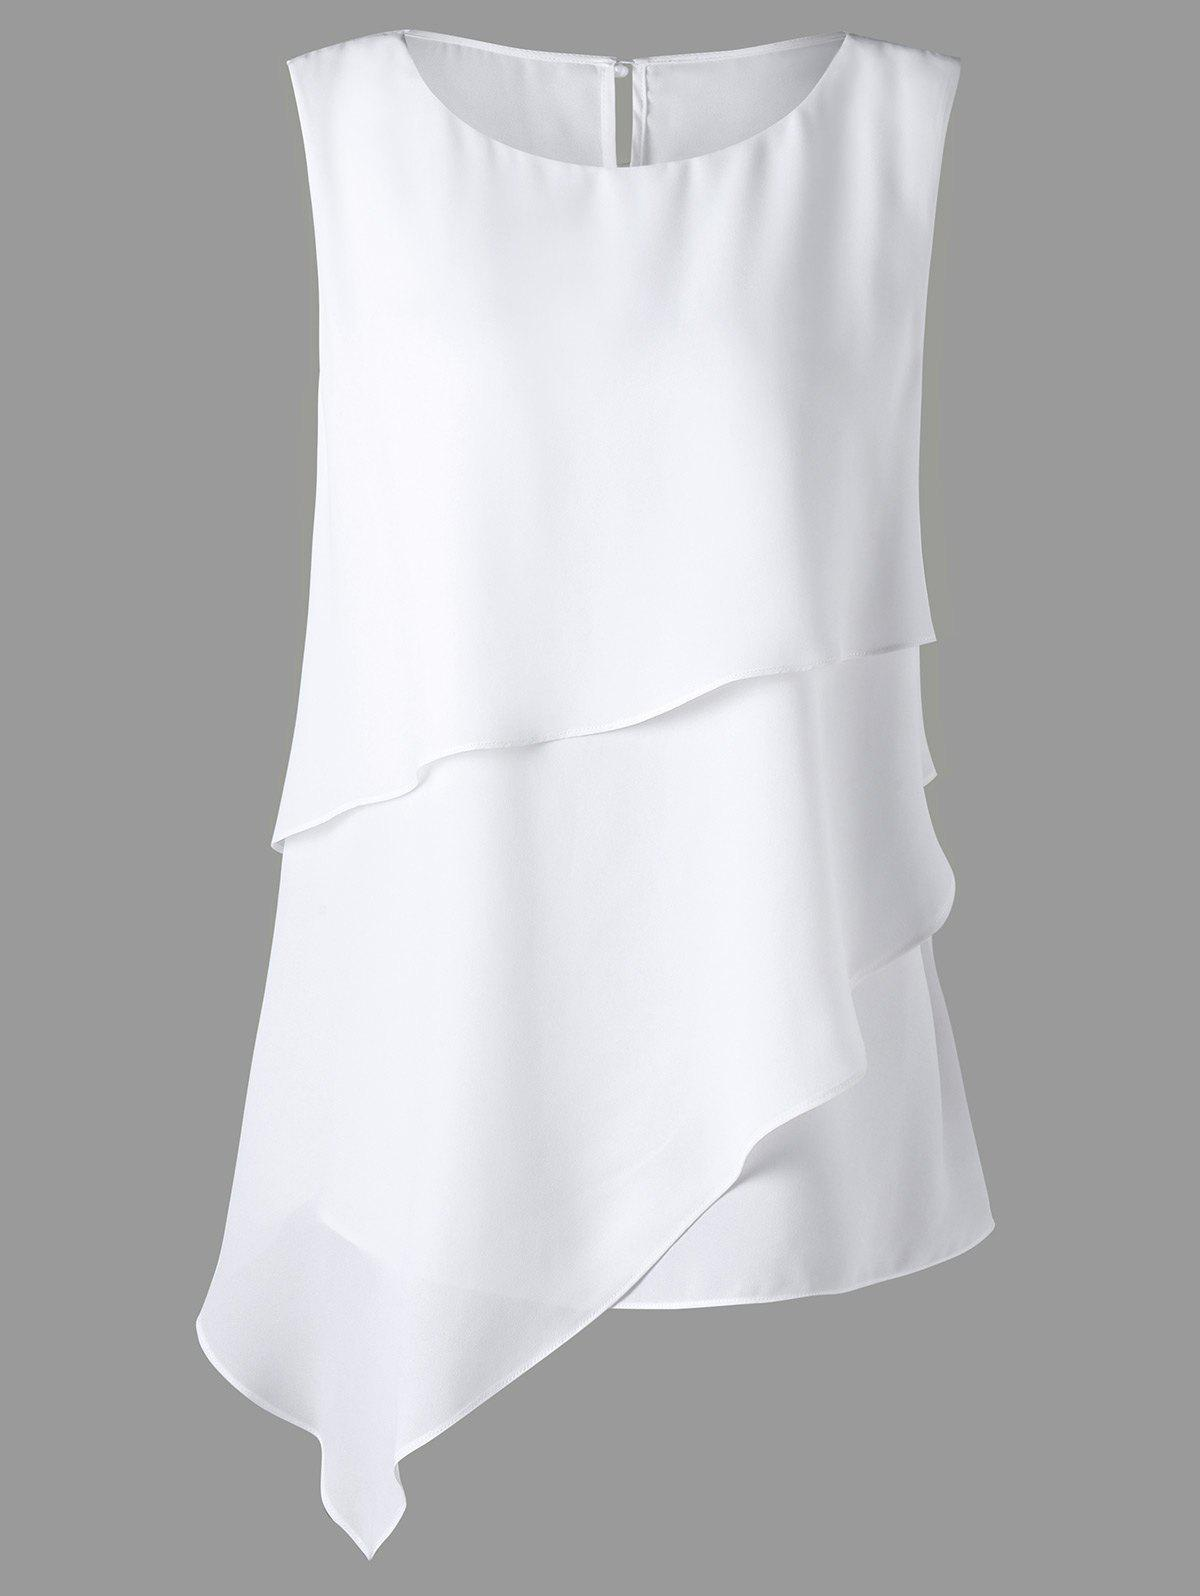 Plus Size Sleeveless Overlay Asymmetrical TopWOMEN<br><br>Size: 4XL; Color: WHITE; Material: Polyester; Shirt Length: Regular; Sleeve Length: Sleeveless; Collar: Crew Neck; Style: Fashion; Season: Fall,Spring,Summer; Pattern Type: Solid; Weight: 0.3500kg; Package Contents: 1 x Top;